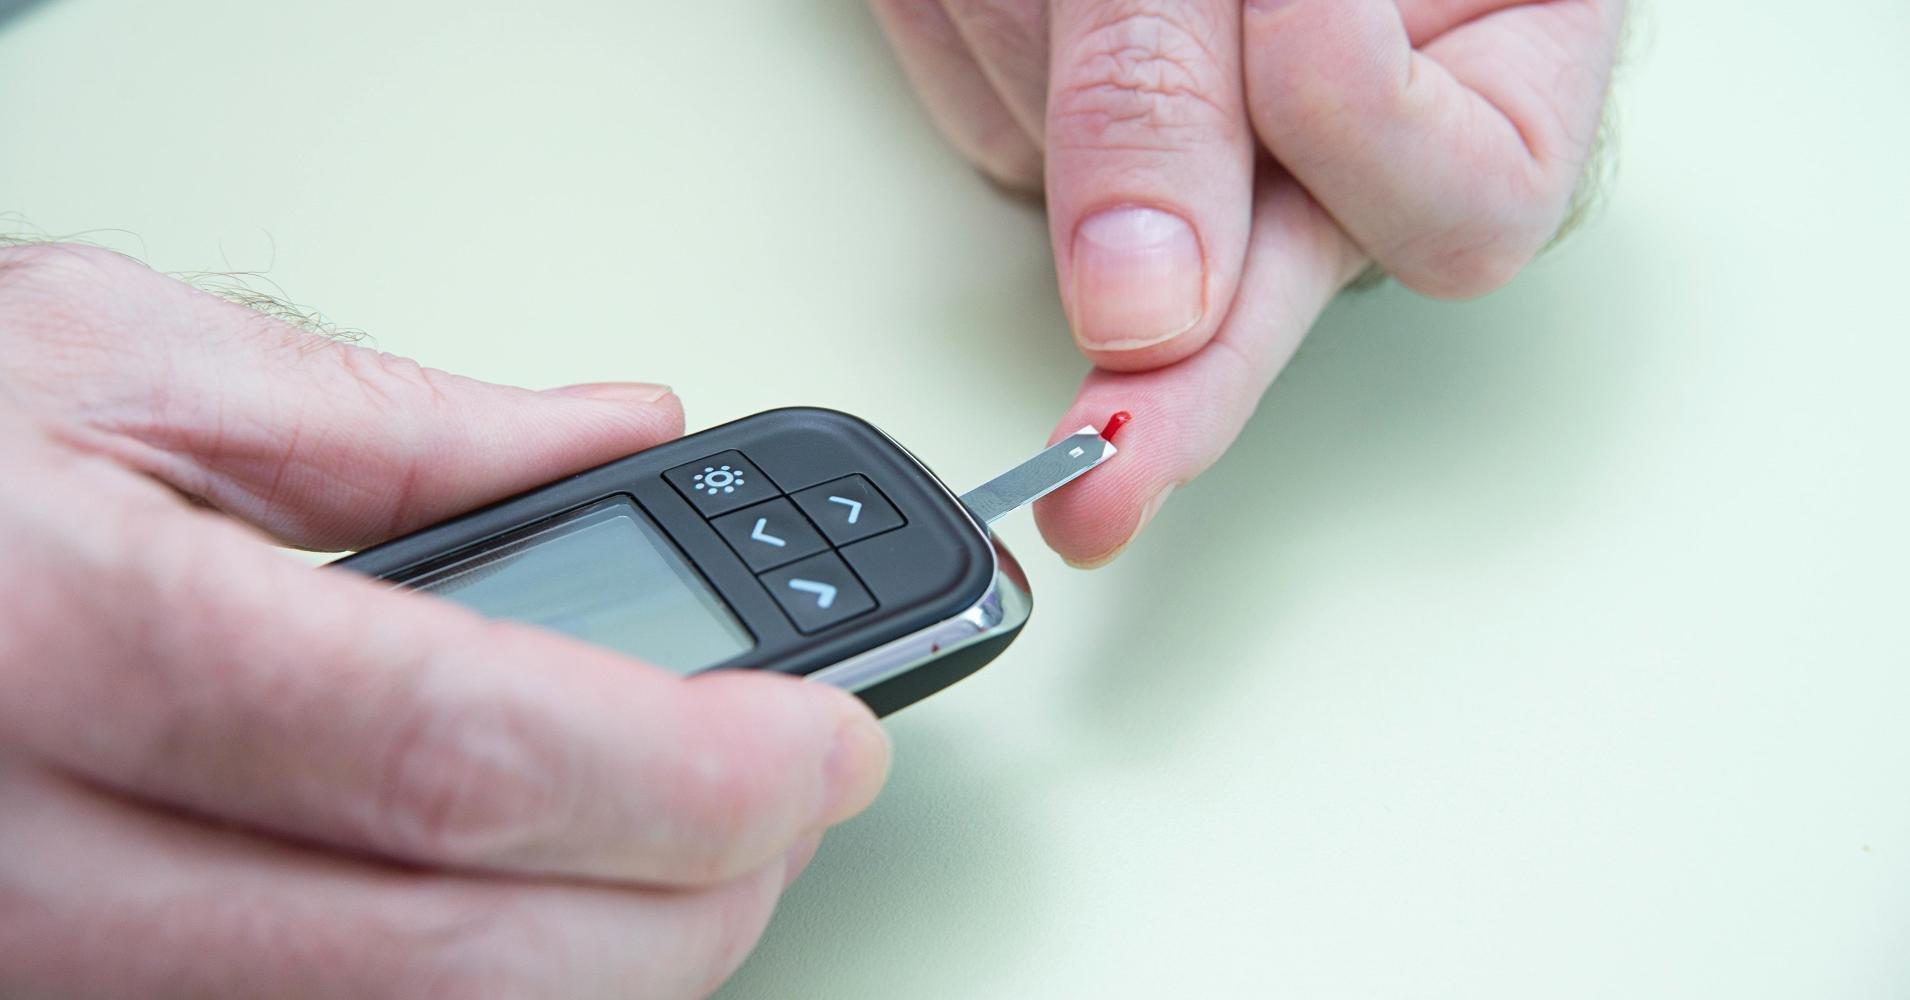 These developments in diabetes care will shape the industry next year